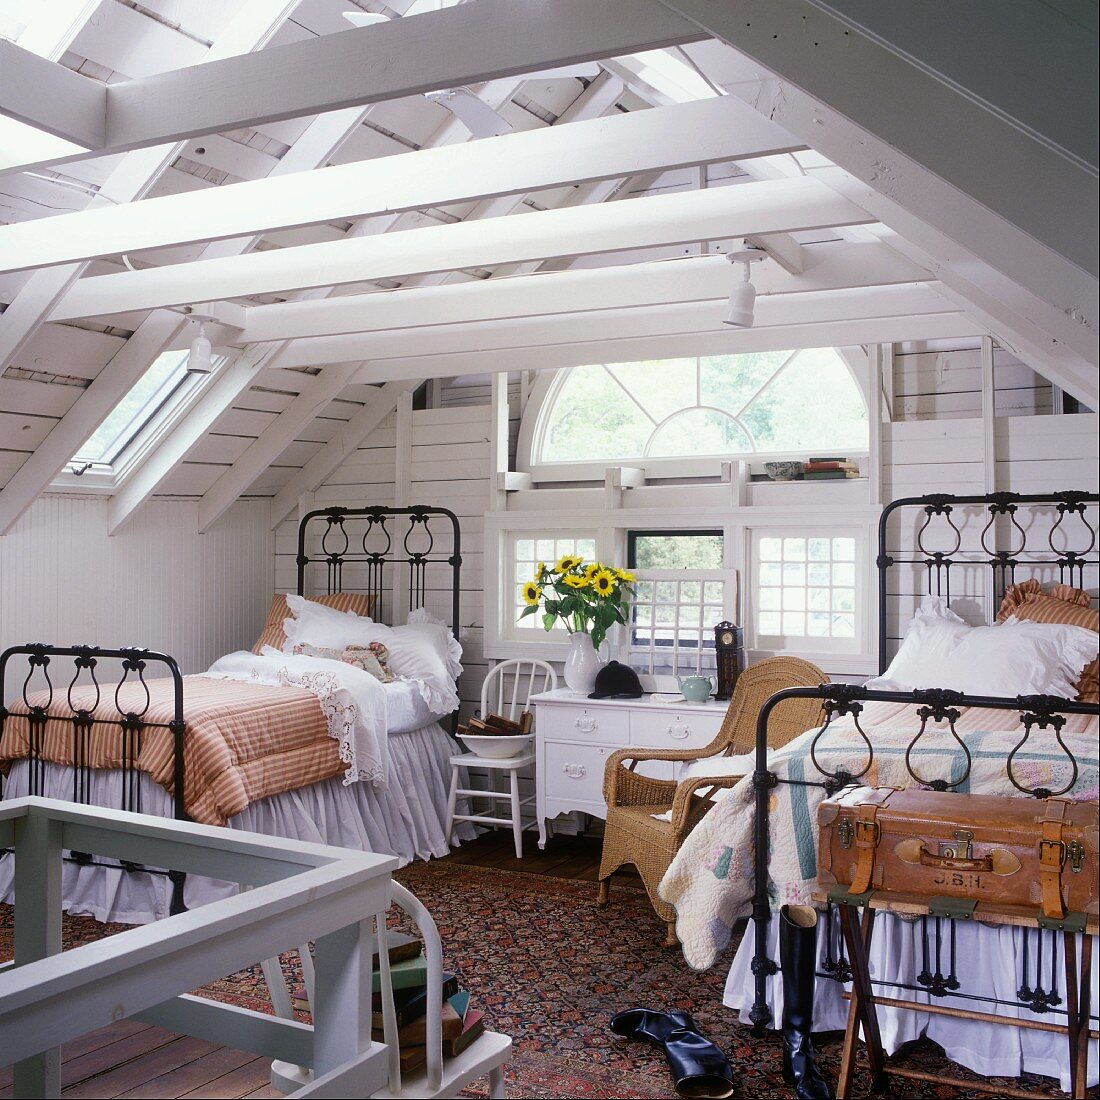 Picture of: Two Black Iron Beds And A Semi Circular Buy Image 11093646 Living4media